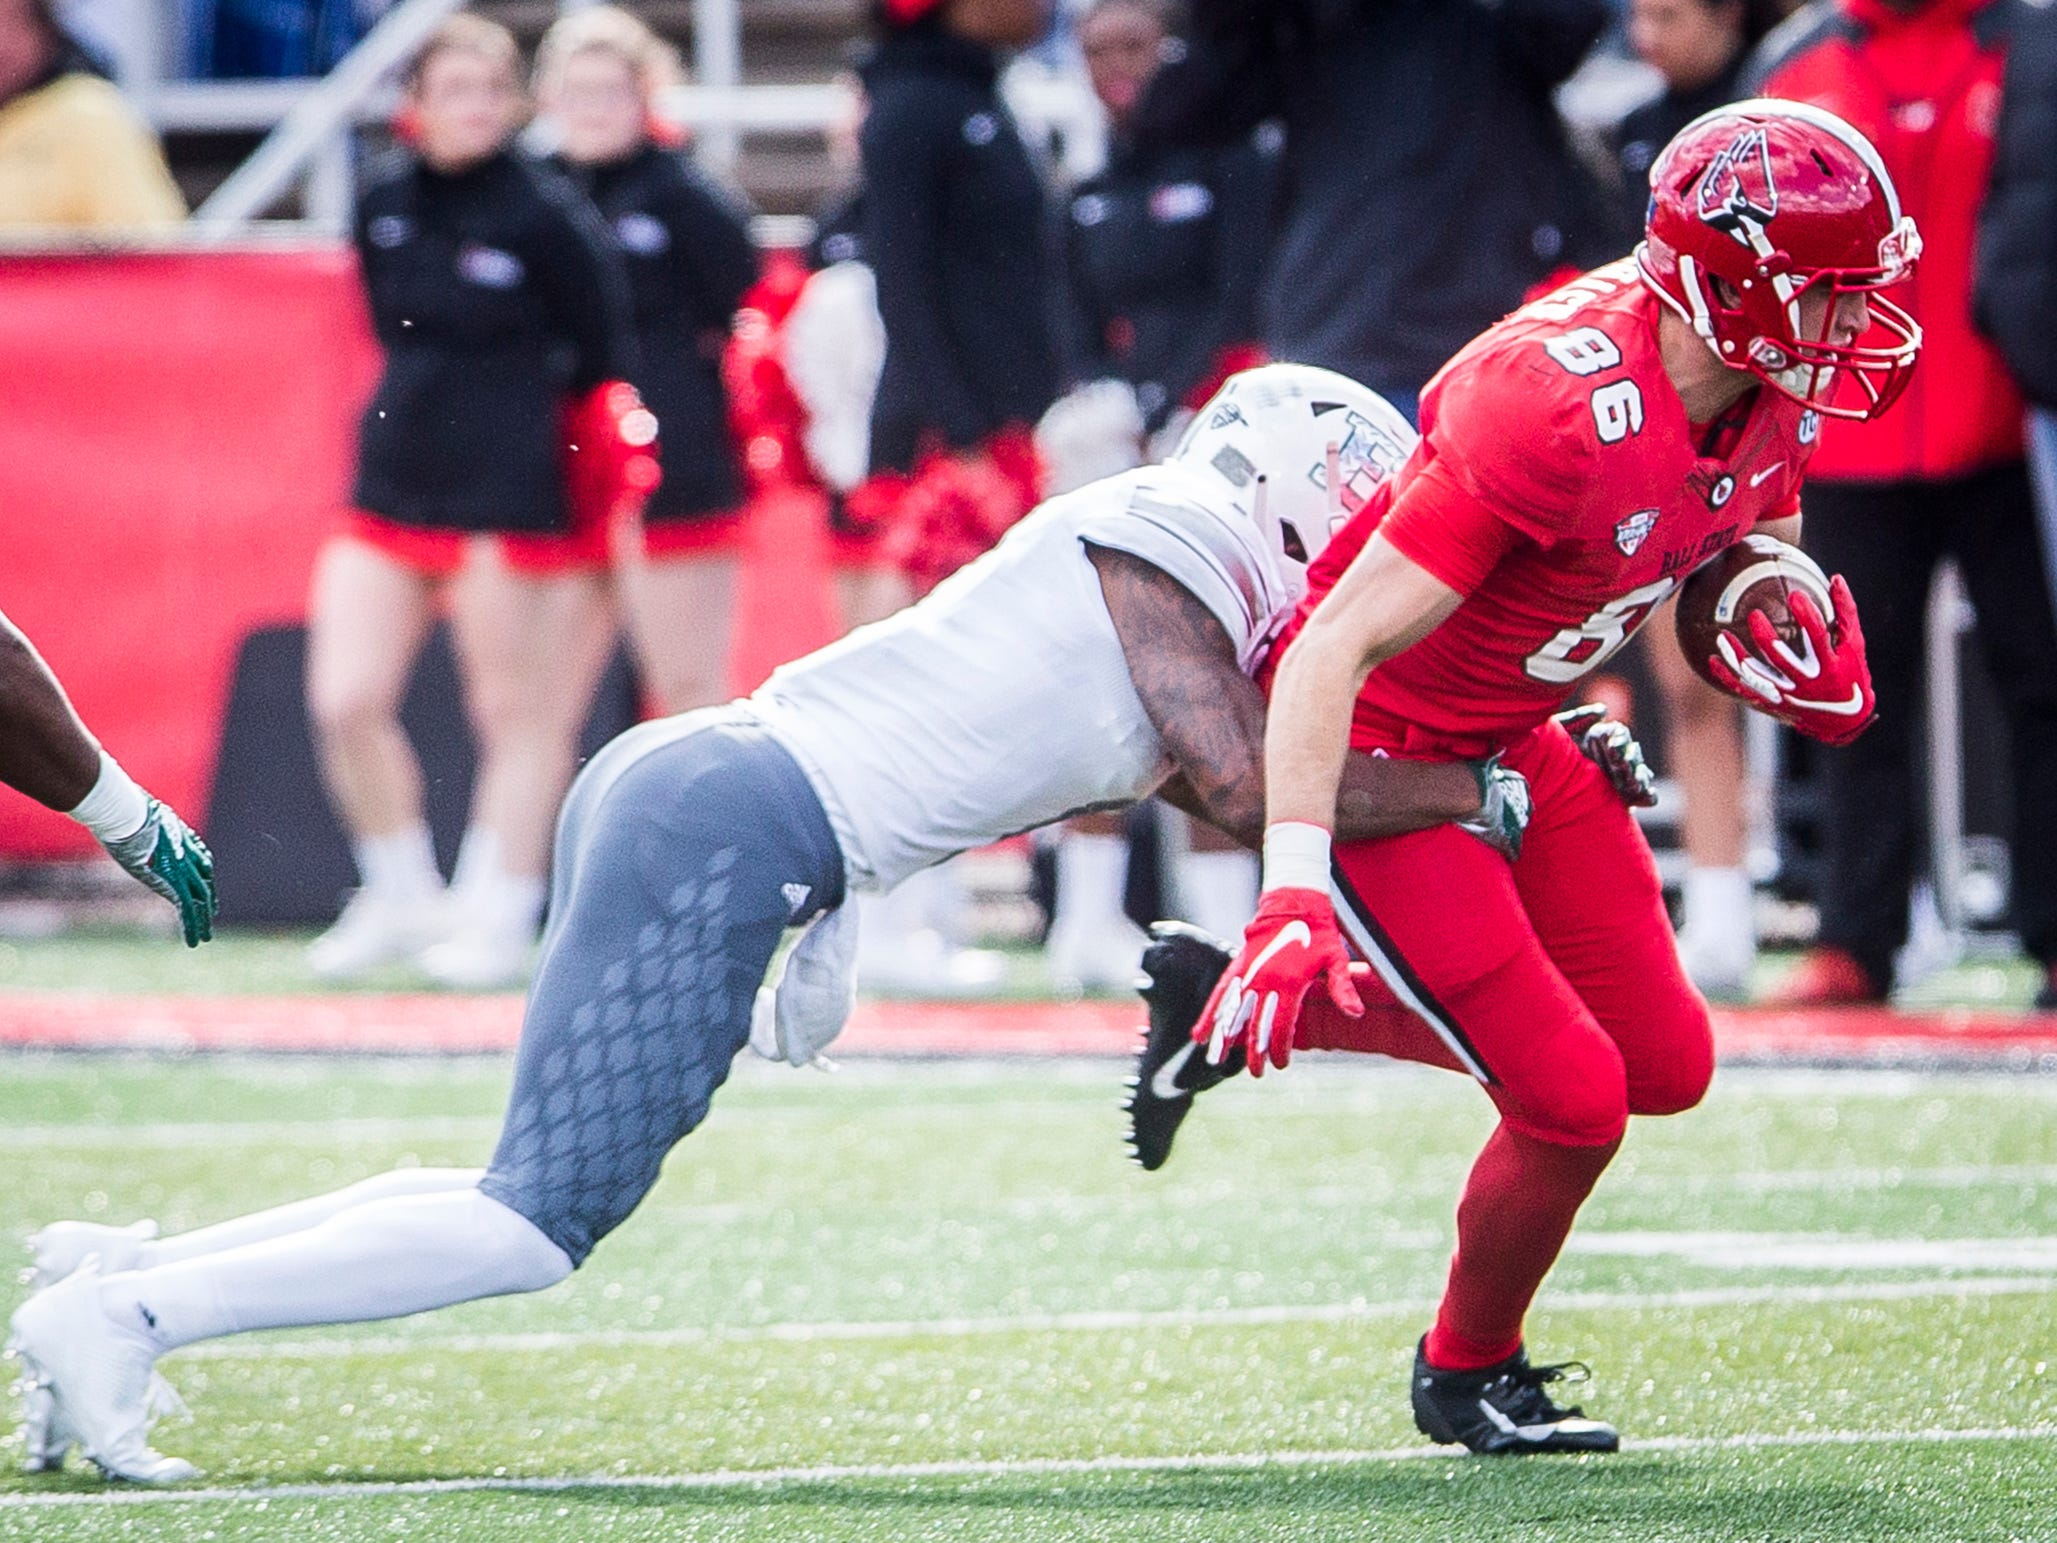 Ball State's Riley Miller fights for more yardage against Eastern Michigan during their game at Scheumann Stadium Saturday, Oct. 20, 2018.